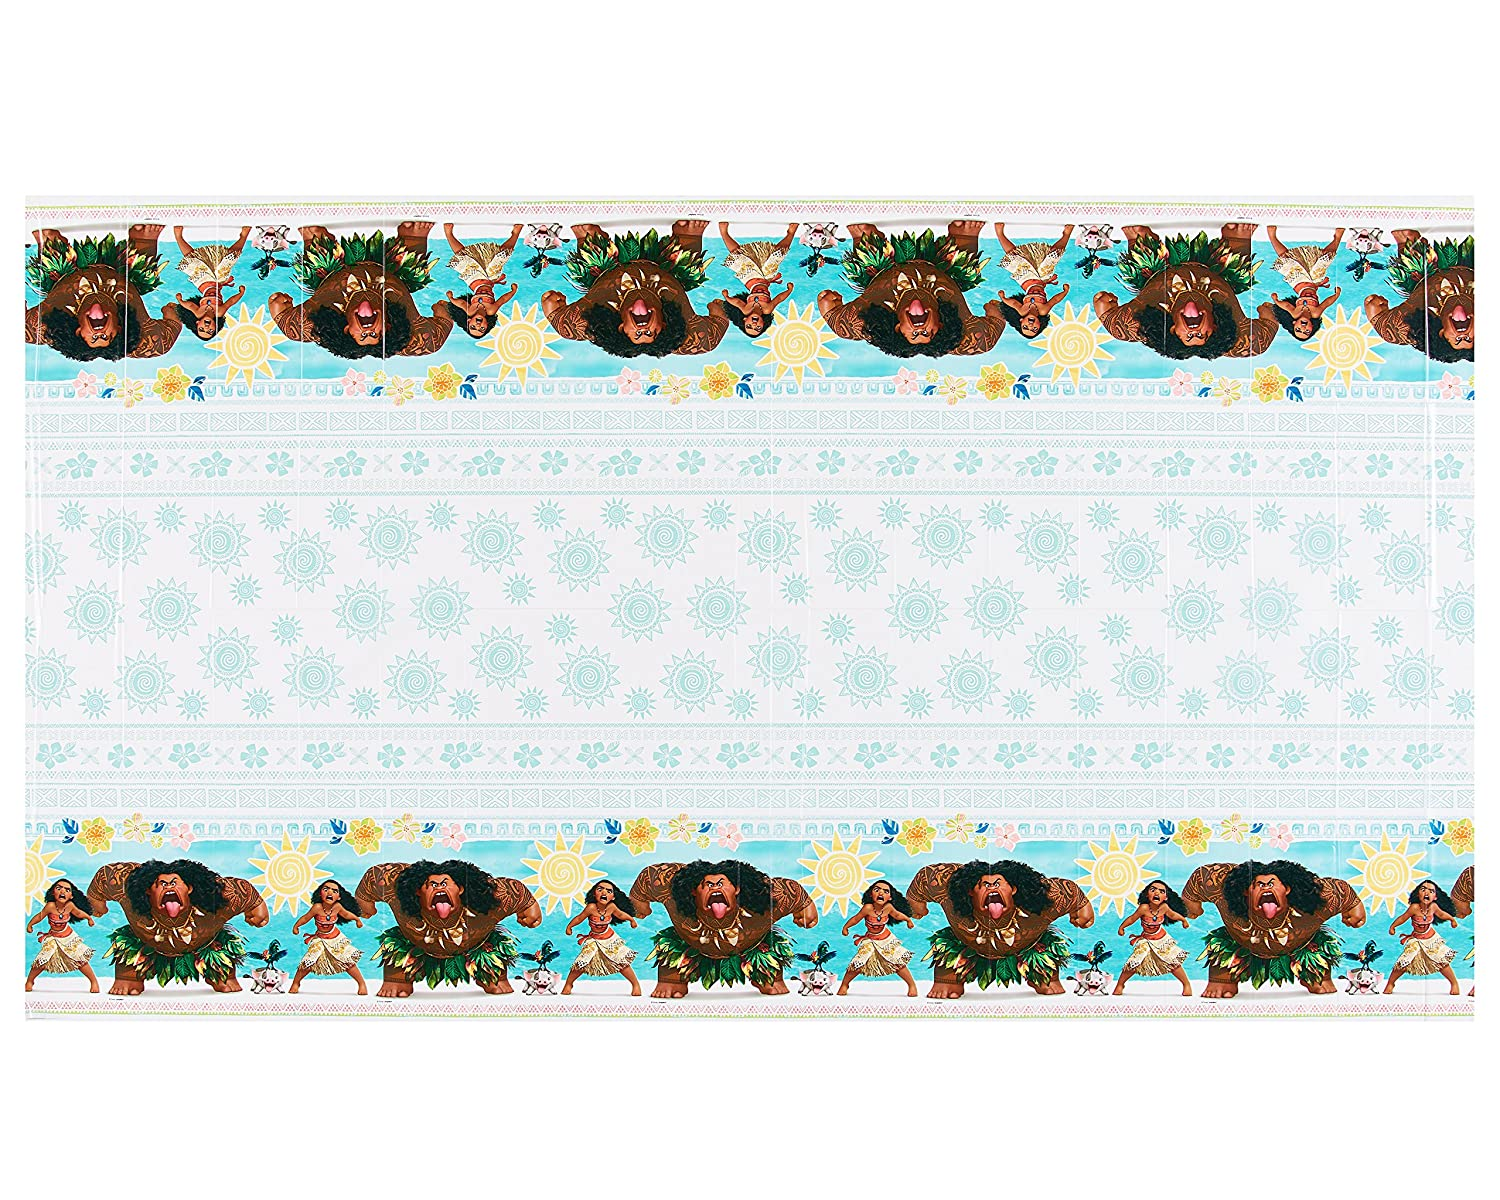 American Greetings Moana 54 x 96 Plastic Table Cover American Greetings Toys 5671277